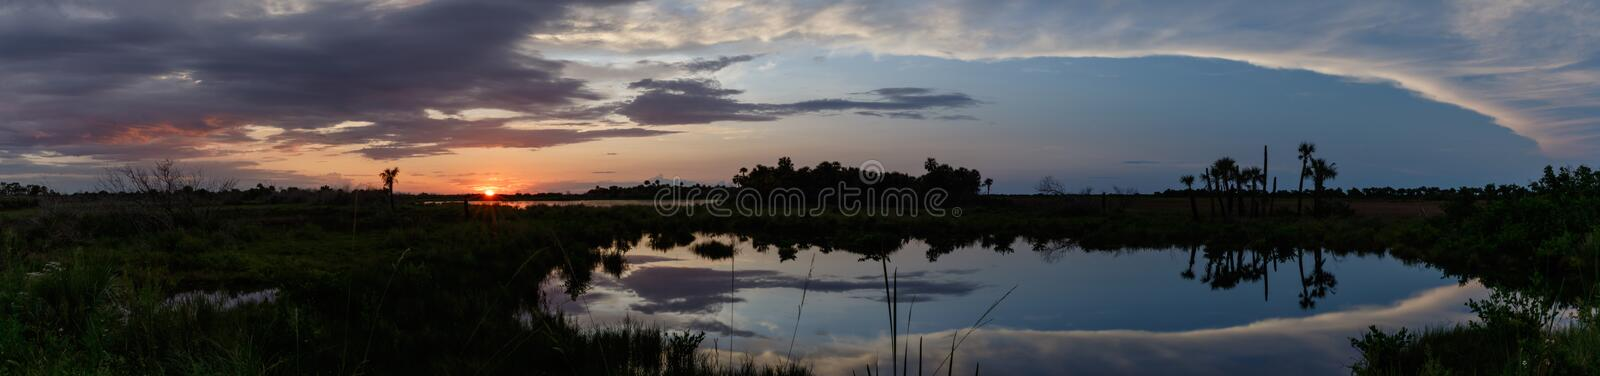 Sunset at Merritt Island National Wildlife Refuge, Florida. Sunset with clouds reflecting in a pond at Merritt Island National Wildlife Refuge, Florida, USA royalty free stock photos